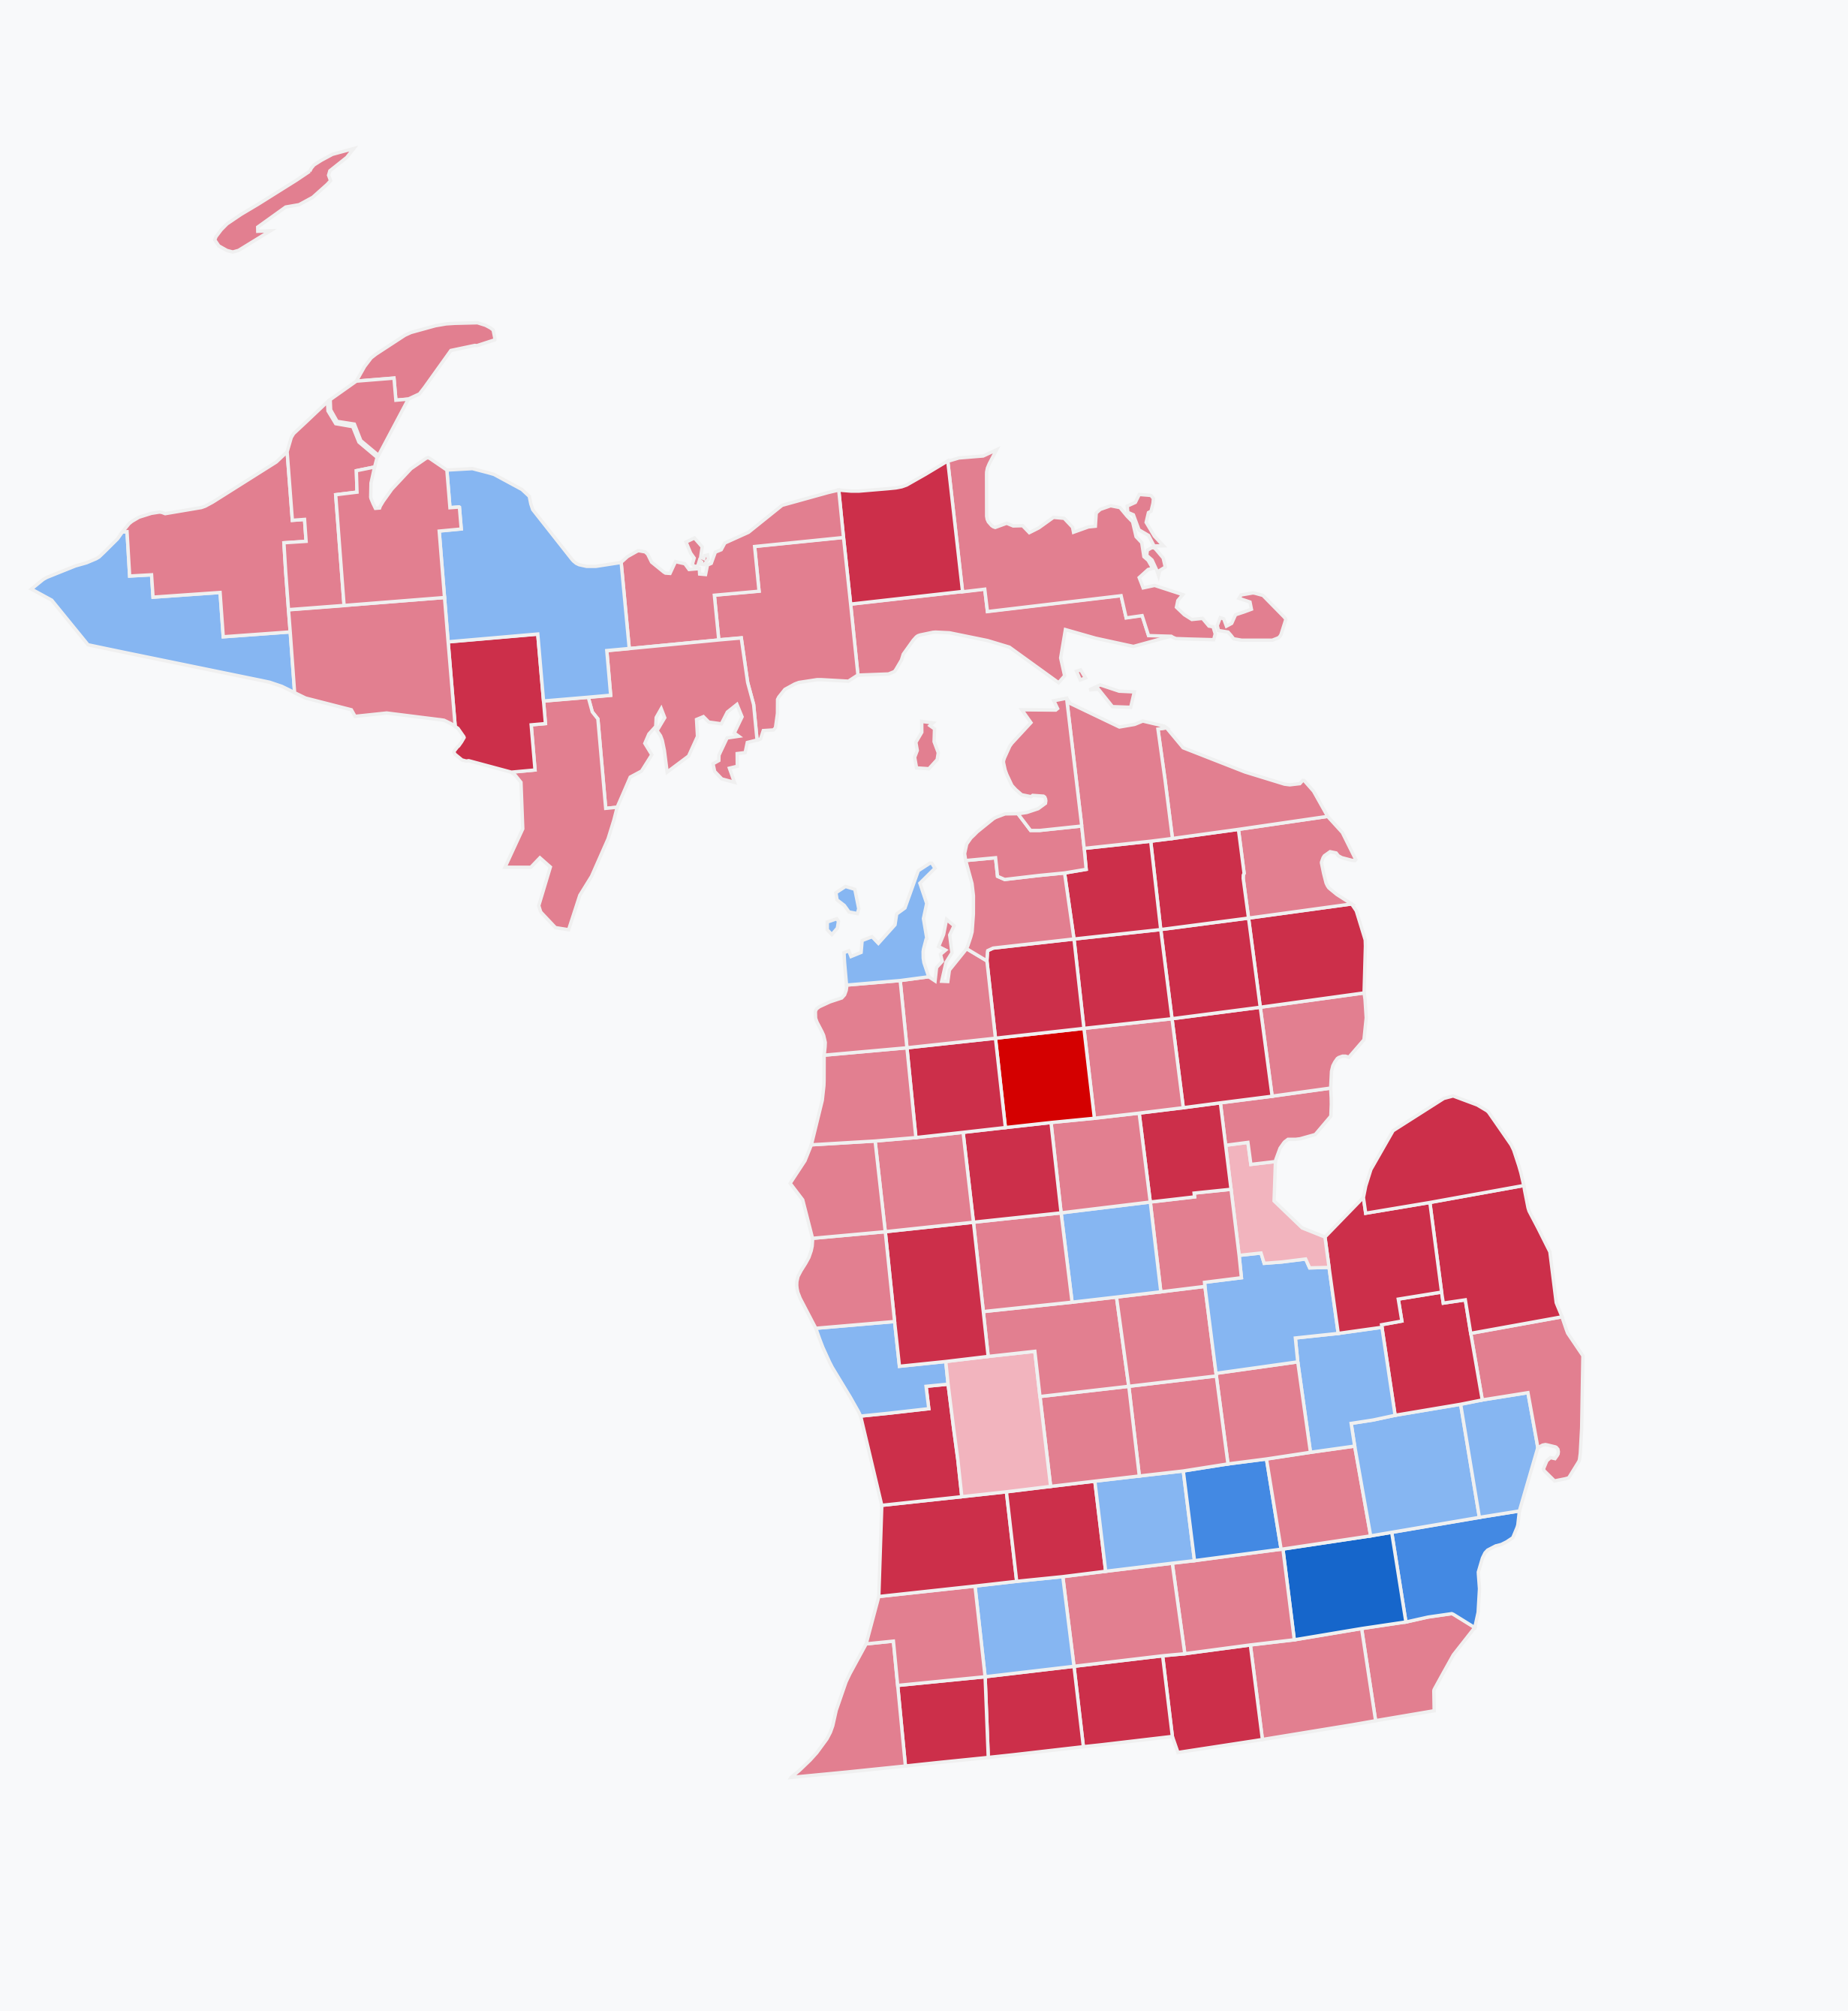 File:2018 Senate election results in Michigan.png.